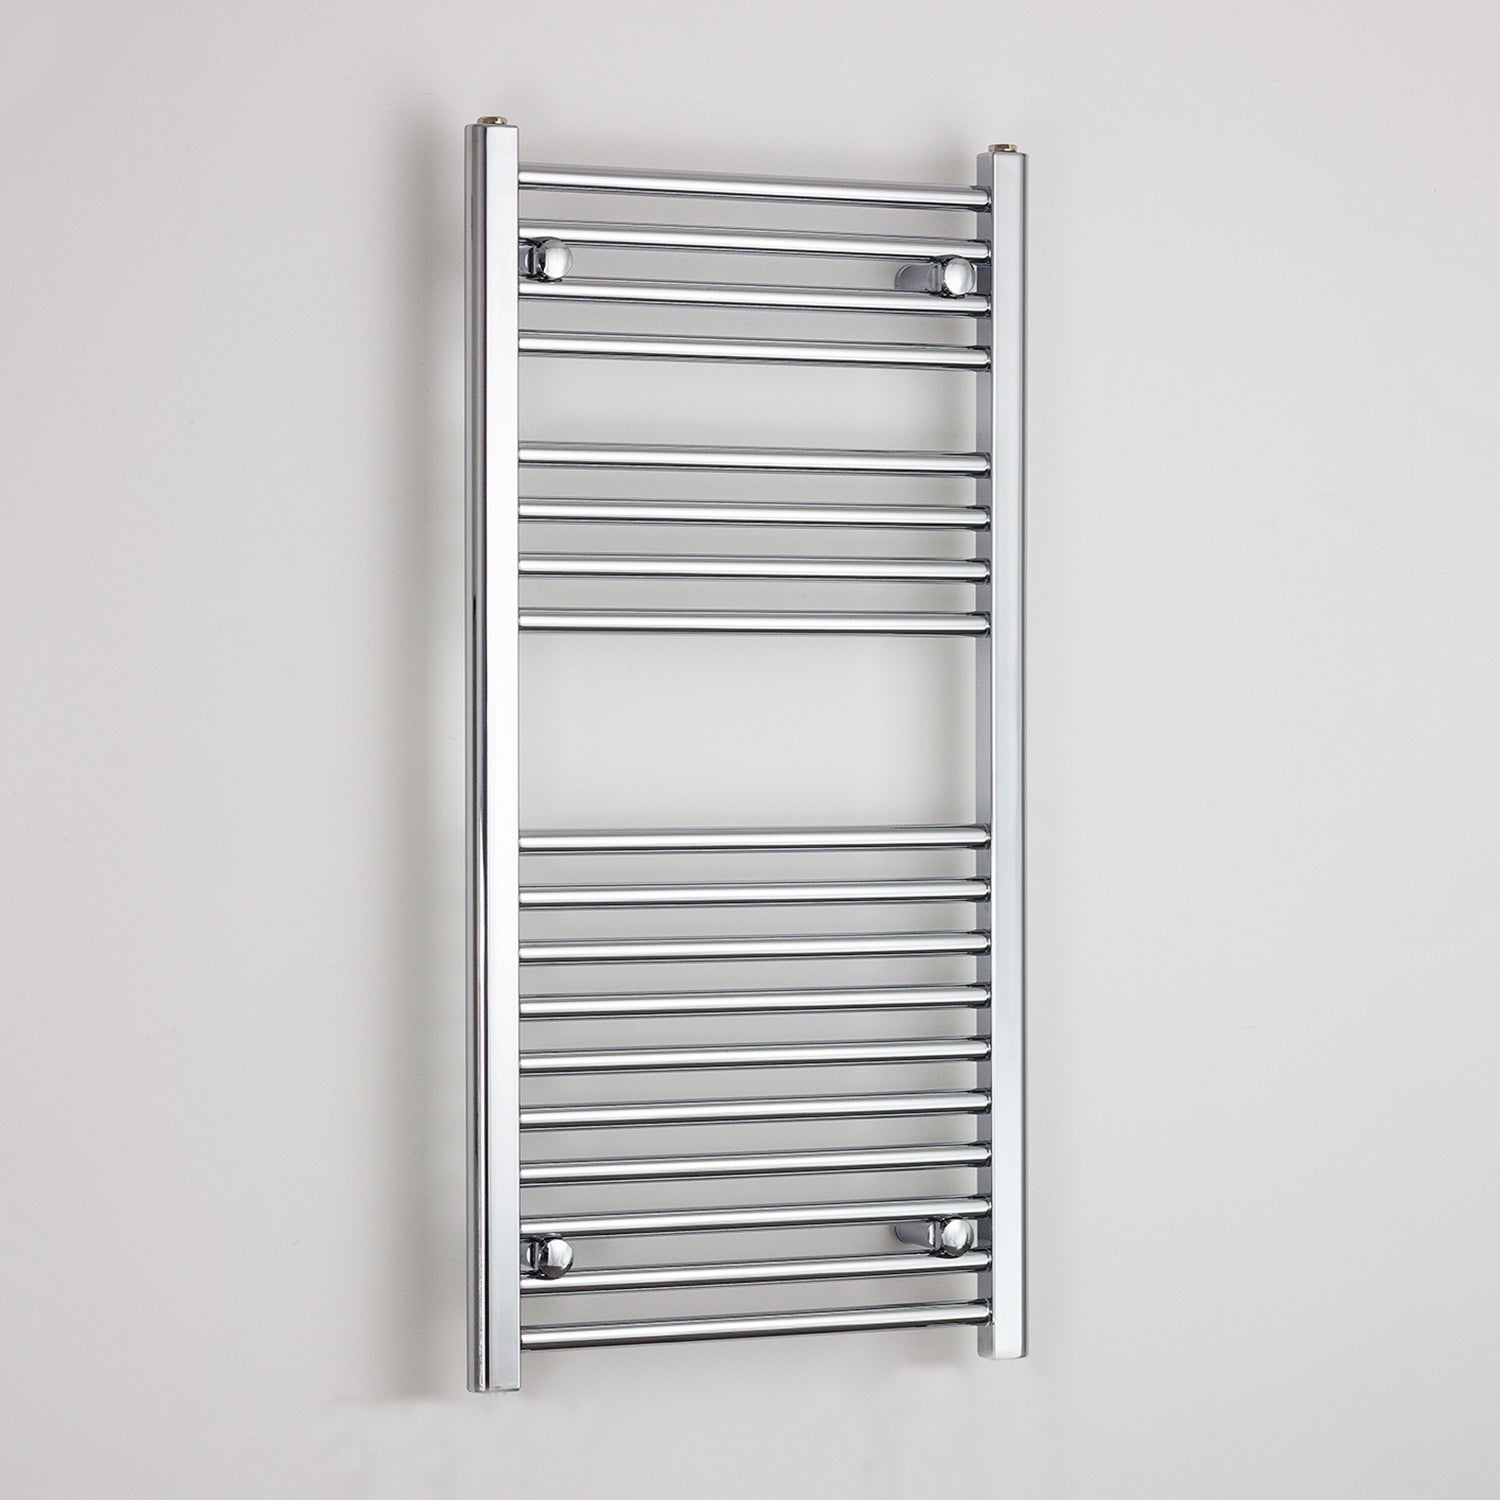 600mm Wide 1000mm High Chrome Towel Rail Radiator